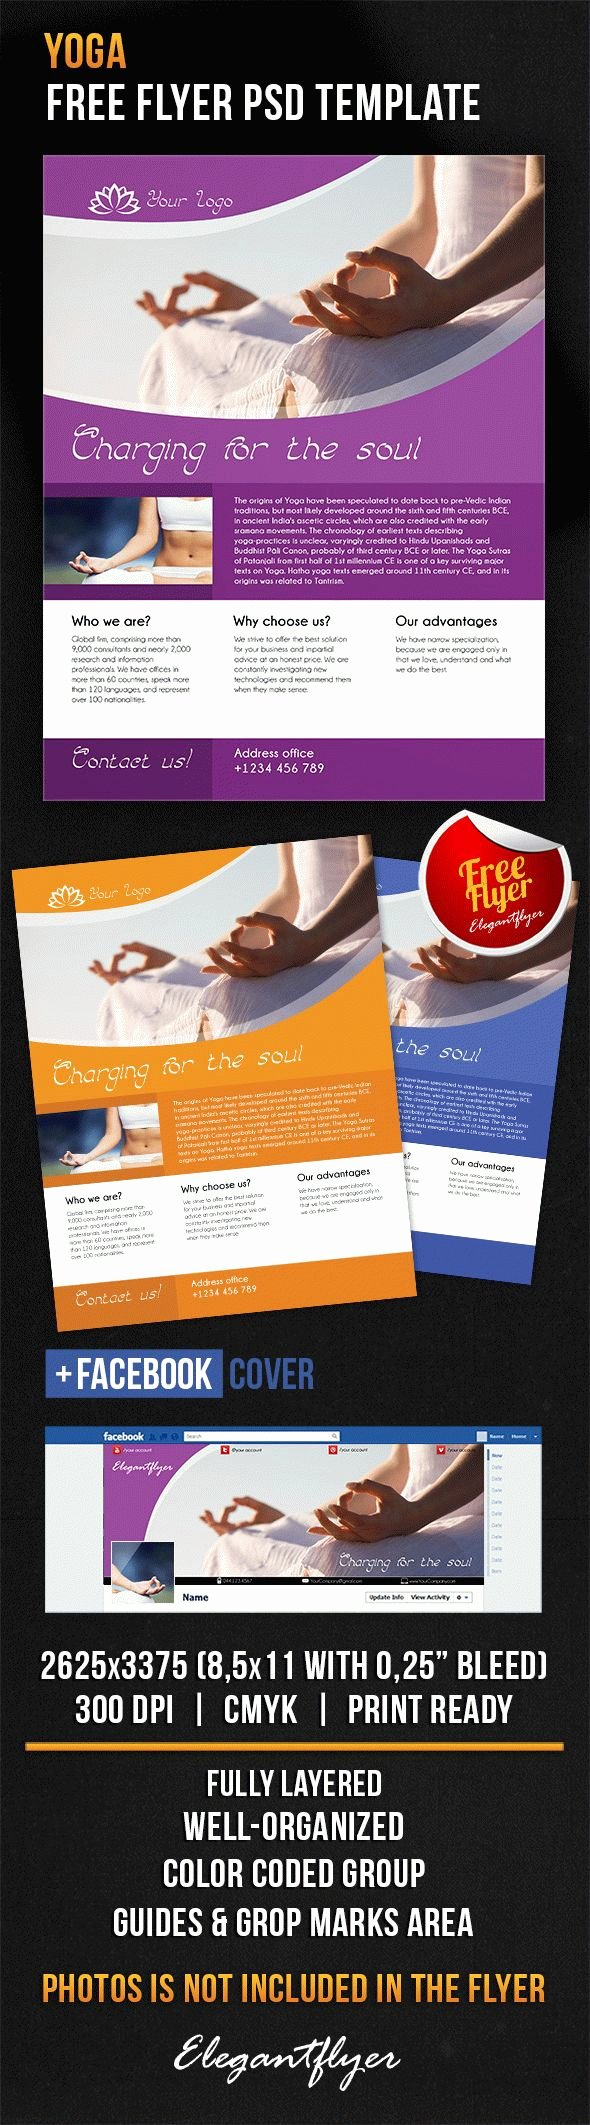 Download Yoga Cover Psd Flyer Template